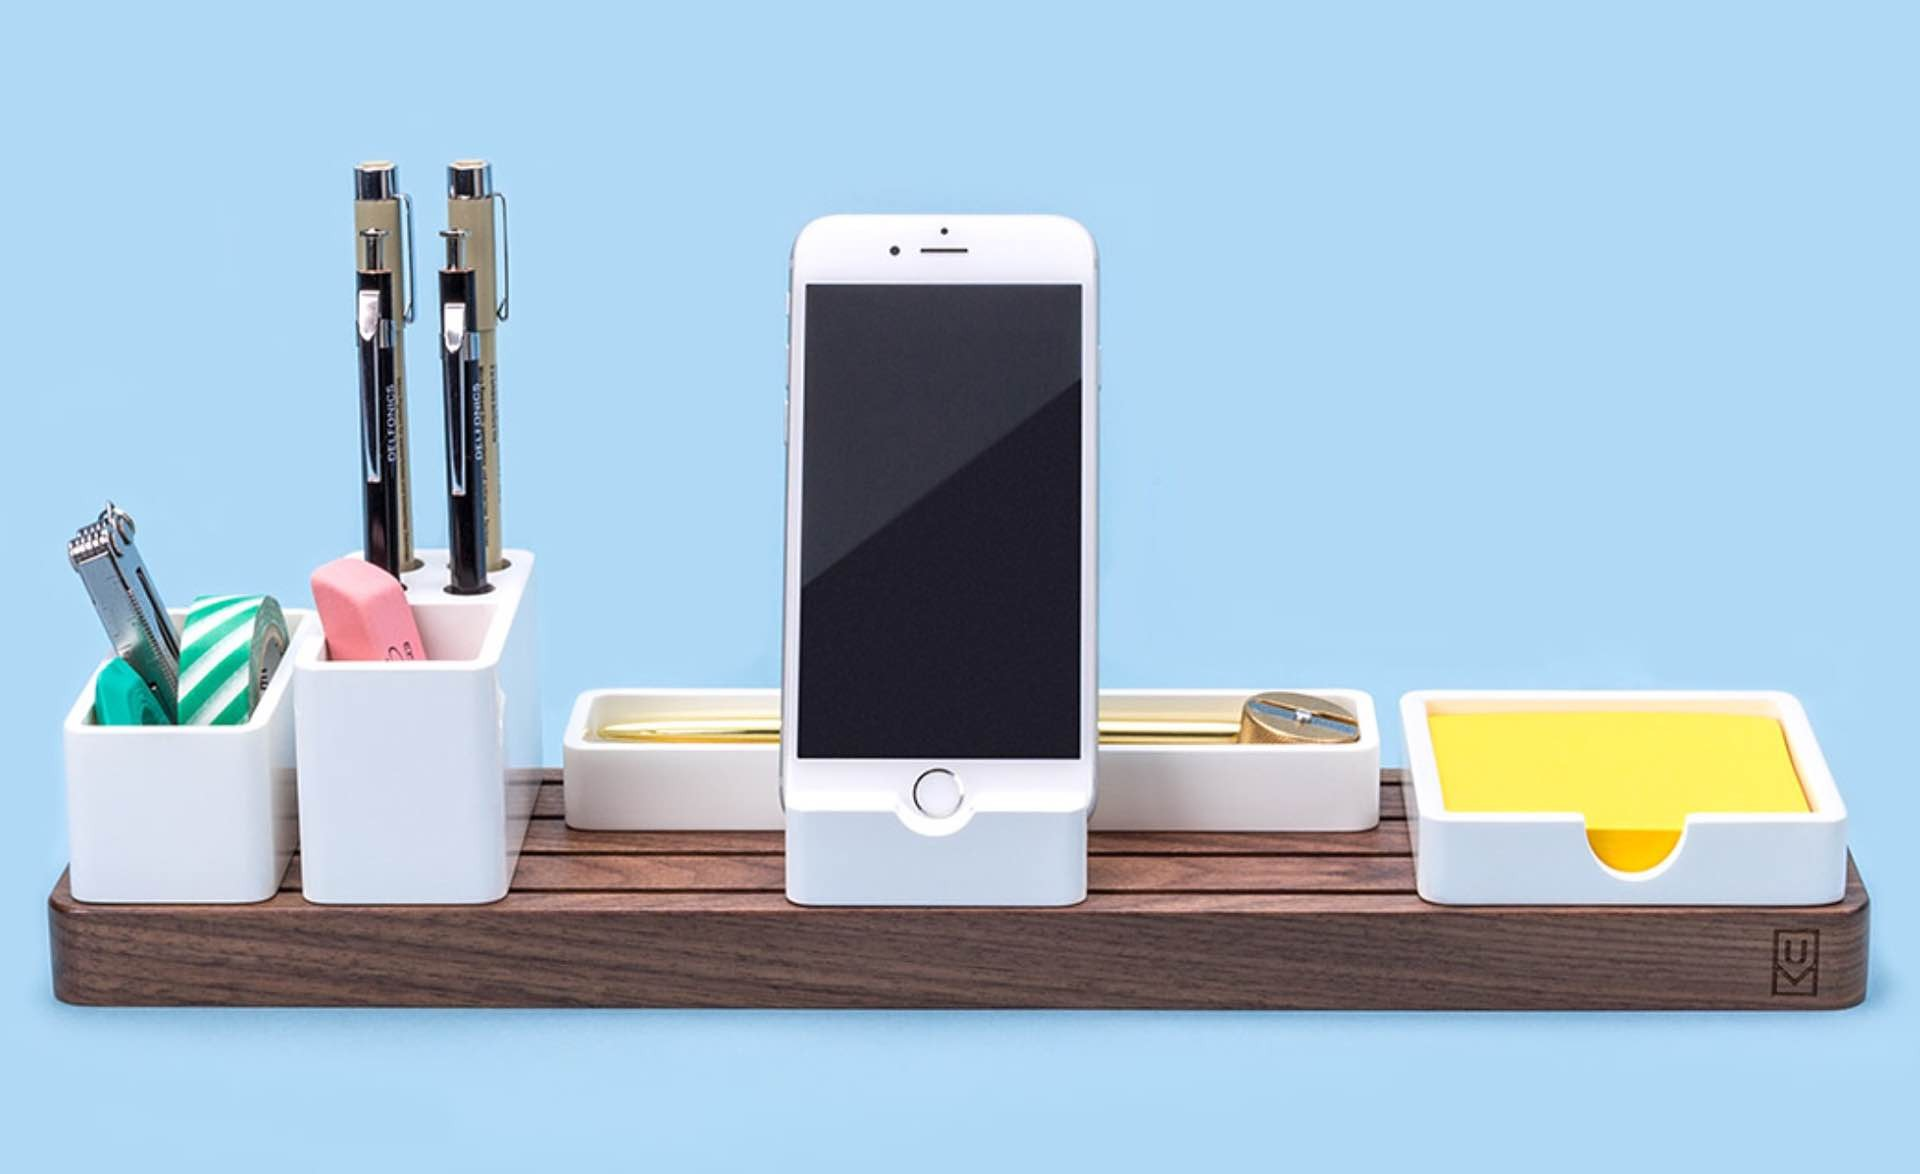 Ugmonk's Gather modular organization system. ($149 for basic set, $199 for extended set)